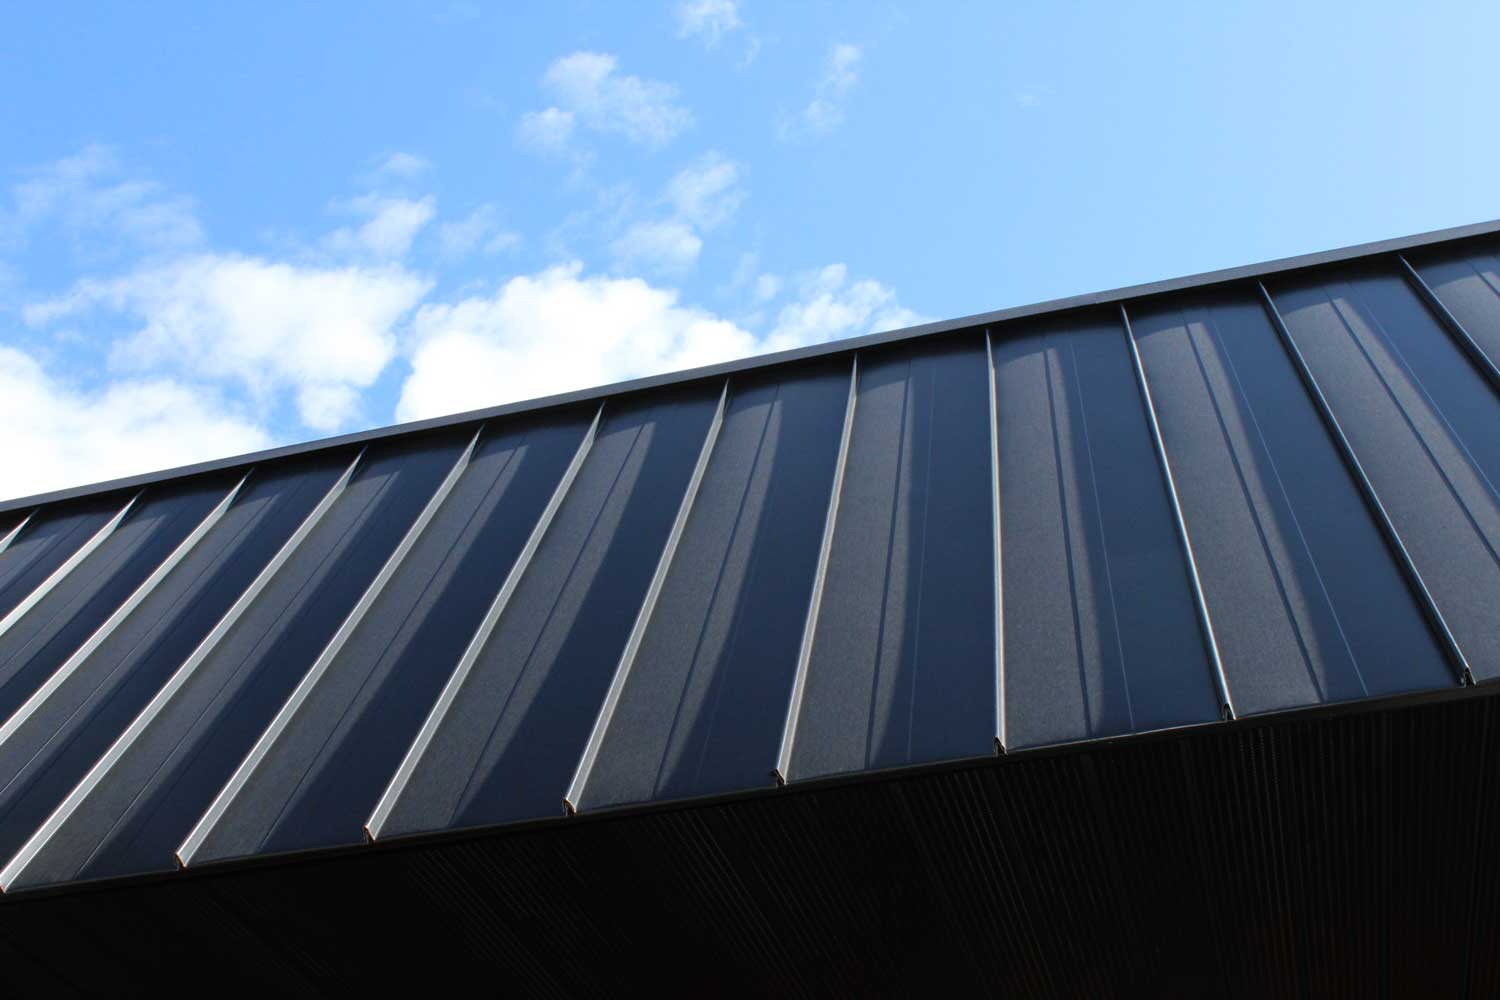 Black Nailstrip Commercial Roof